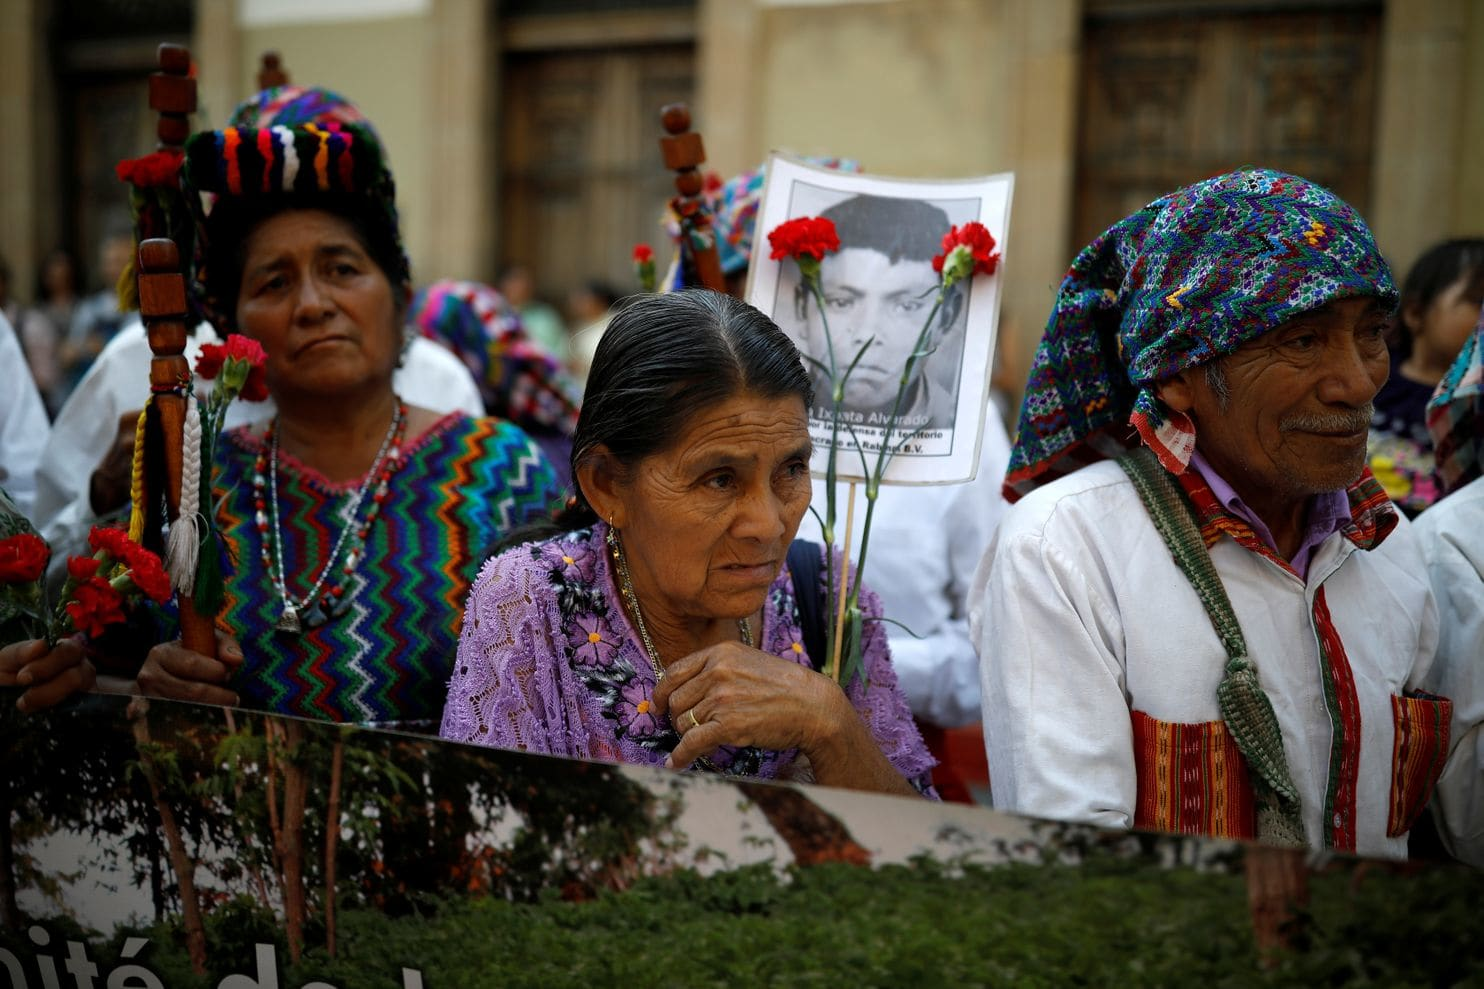 Massacre in Guatemala -